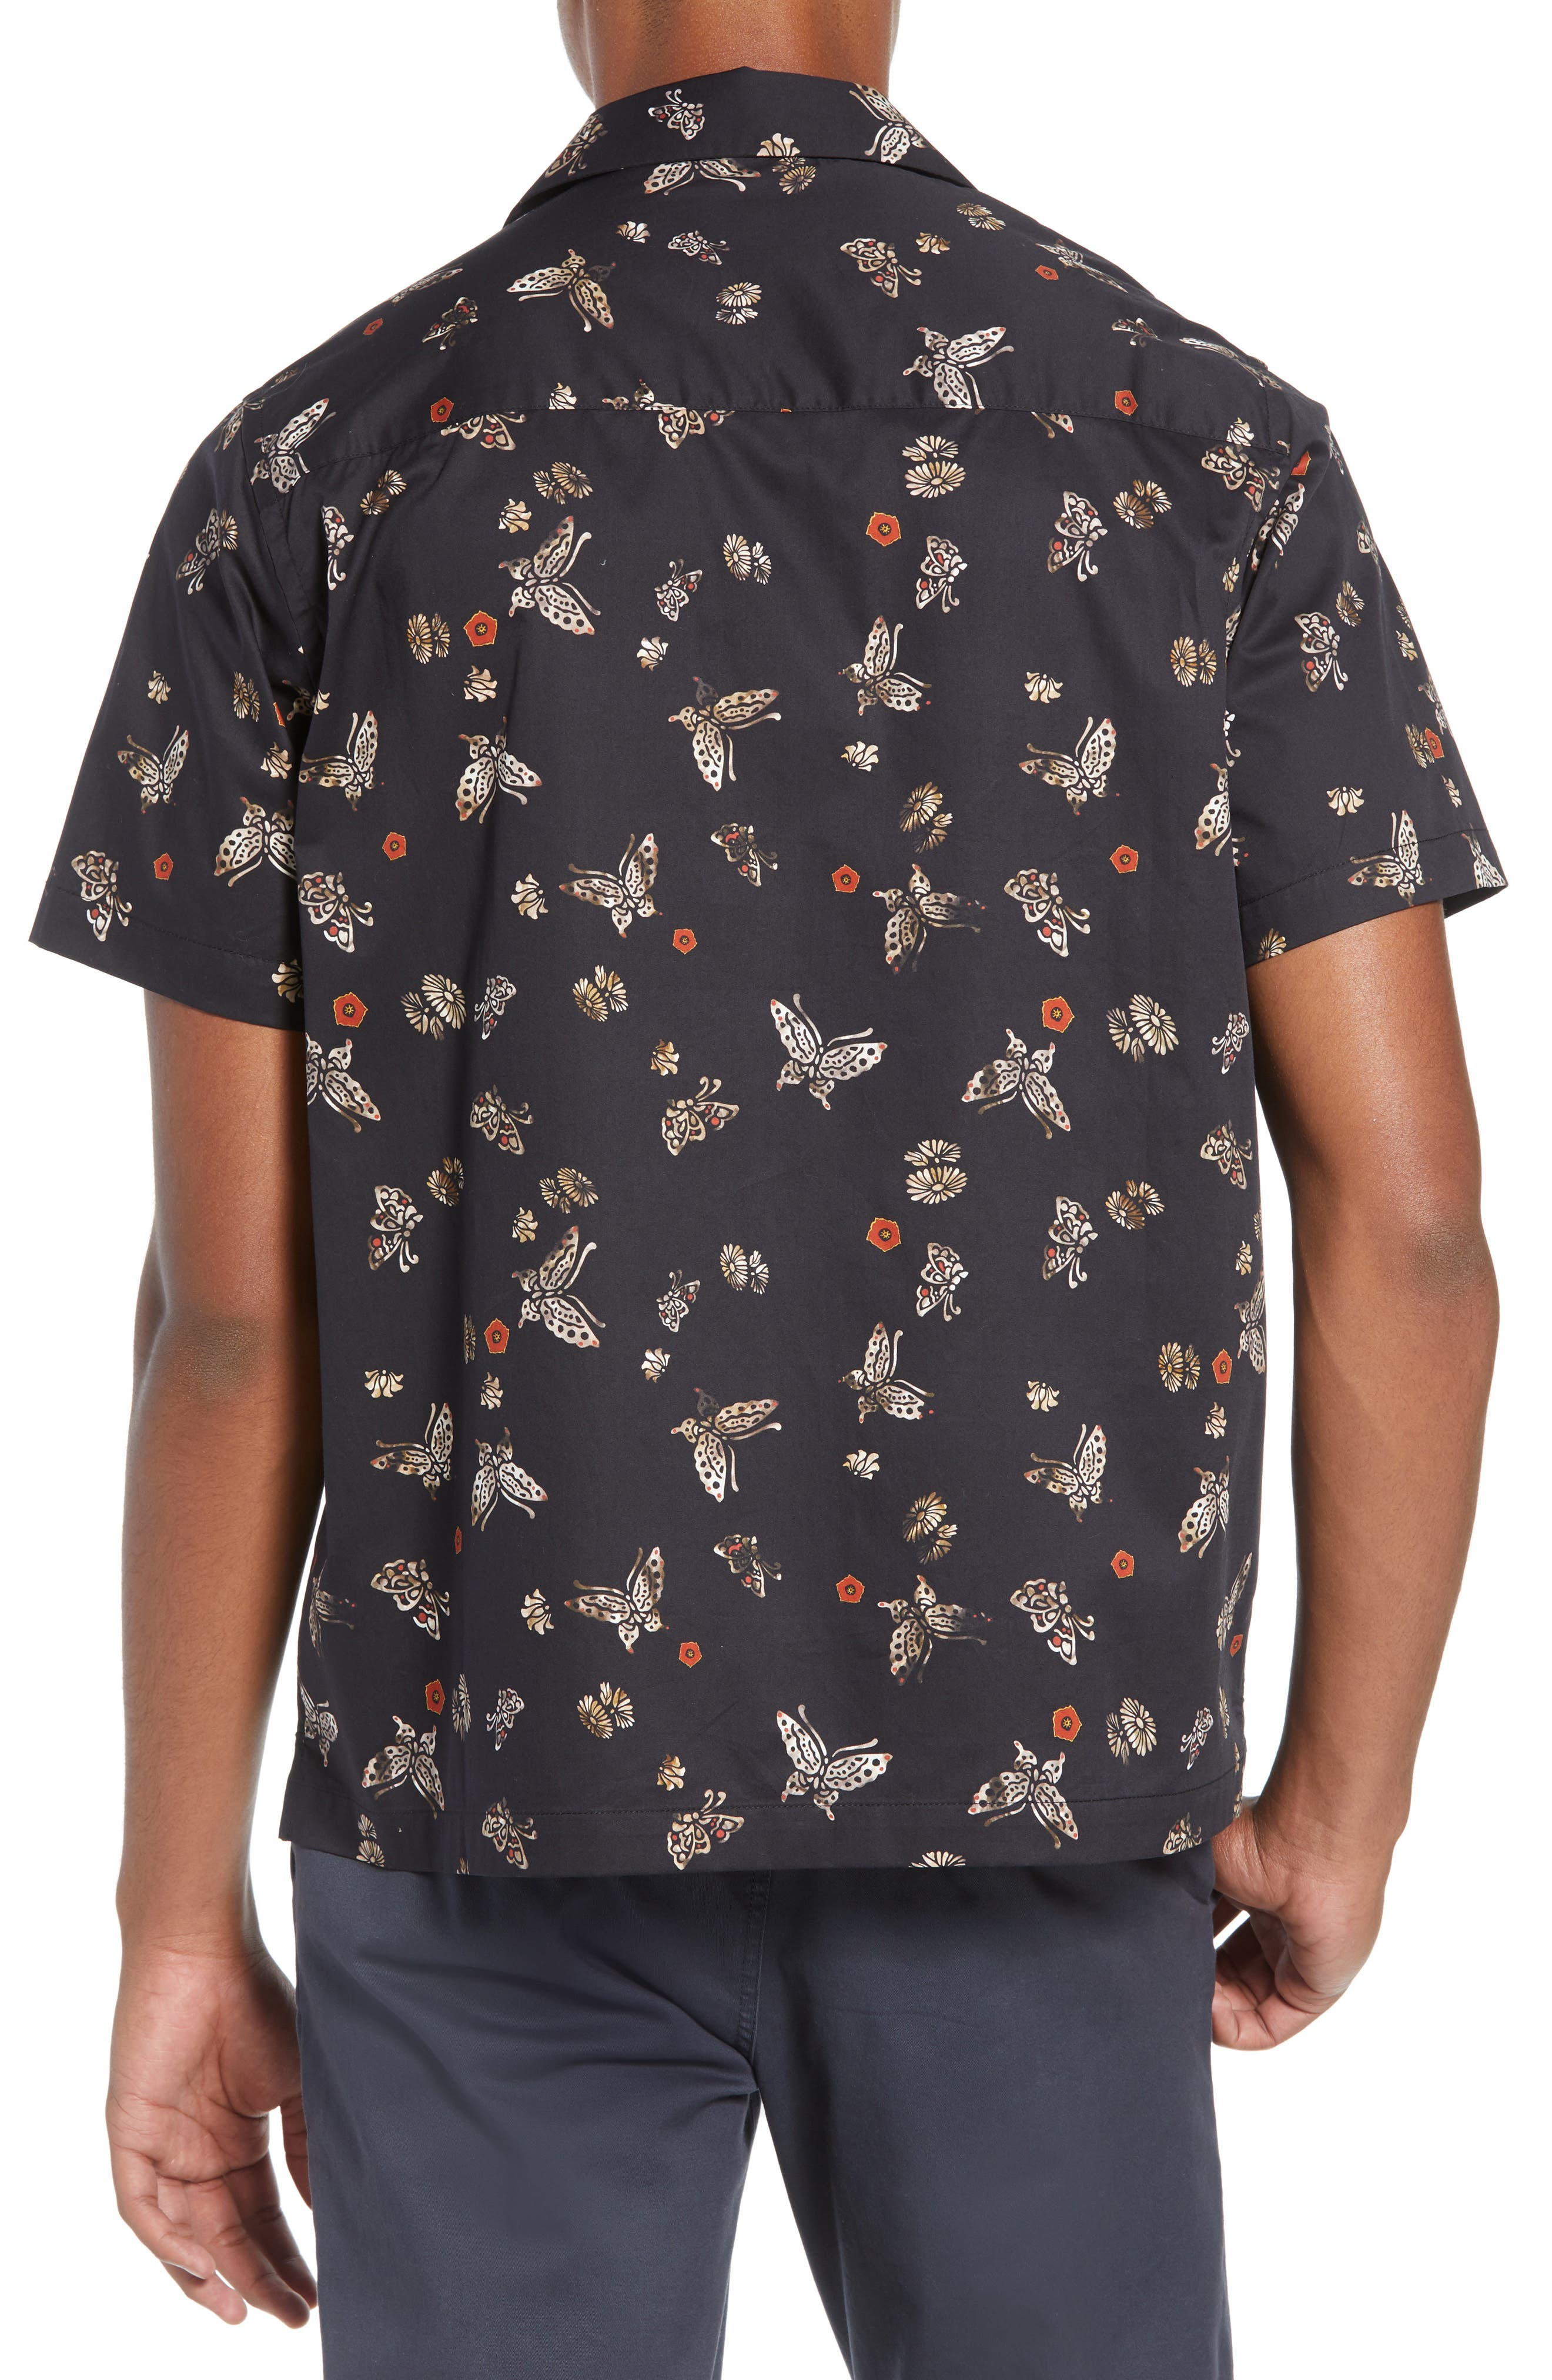 Canty Lacquer Butterfly Camp Shirt,                             Alternate thumbnail 3, color,                             LACQUER BUTTERFLY PRINT